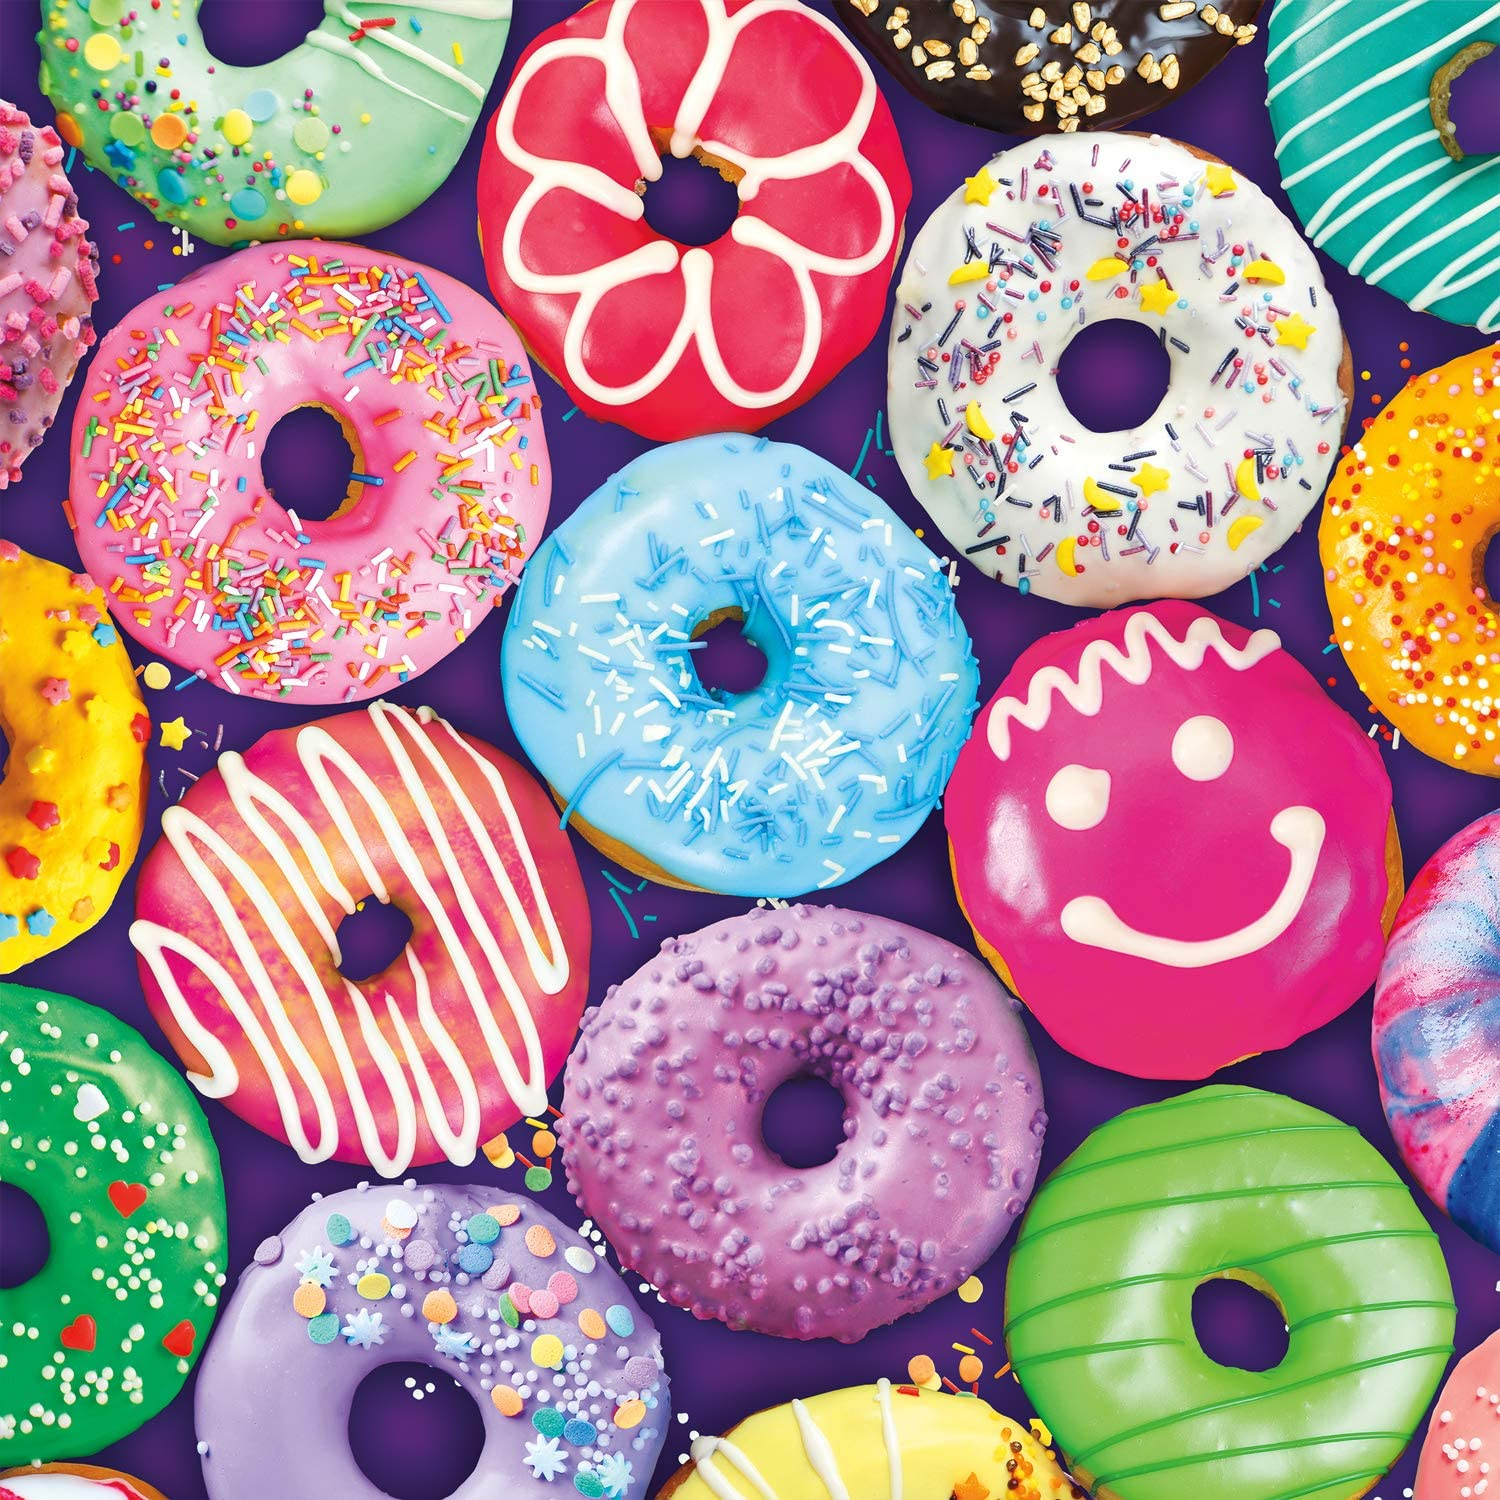 Buffalo Games - Delightful Donuts - 300 Large Piece Jigsaw Puzzle 81g6Cbp0S4L